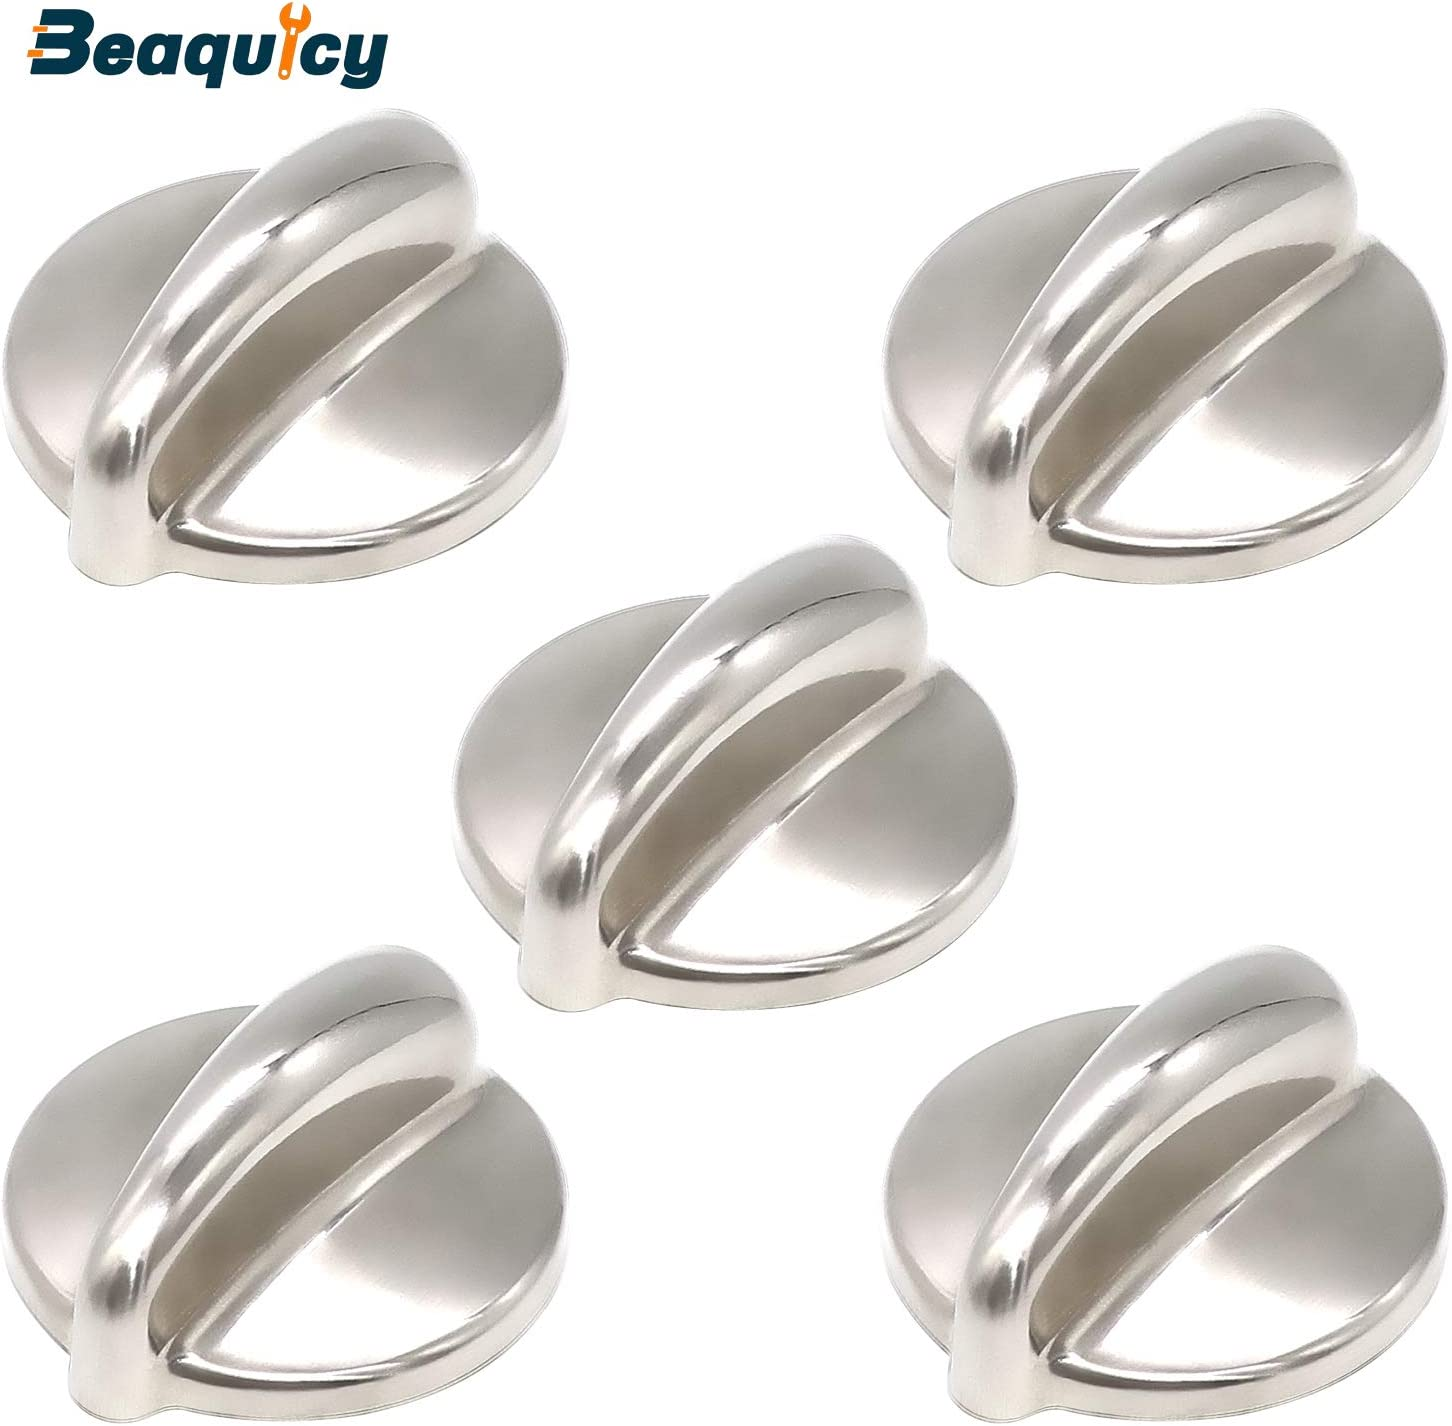 Replacement for GE Range Pack of 5 Beaquicy WB03K10303 Surface Burner Knob Heavy Duty Metal Knobs